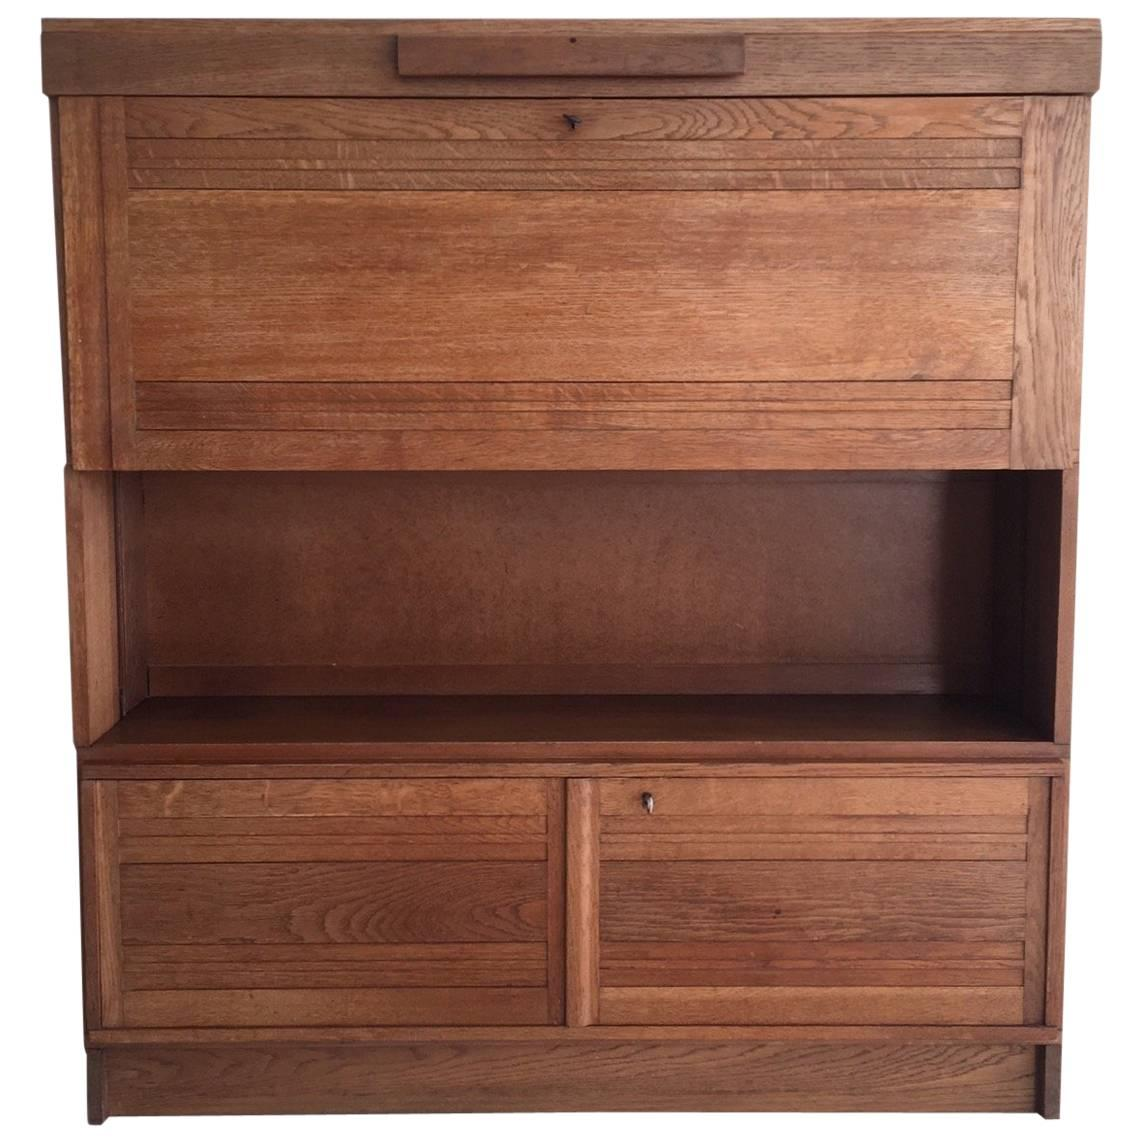 Modest bookcase, secretaire in Oak by Gebroeders Reens, 1930s